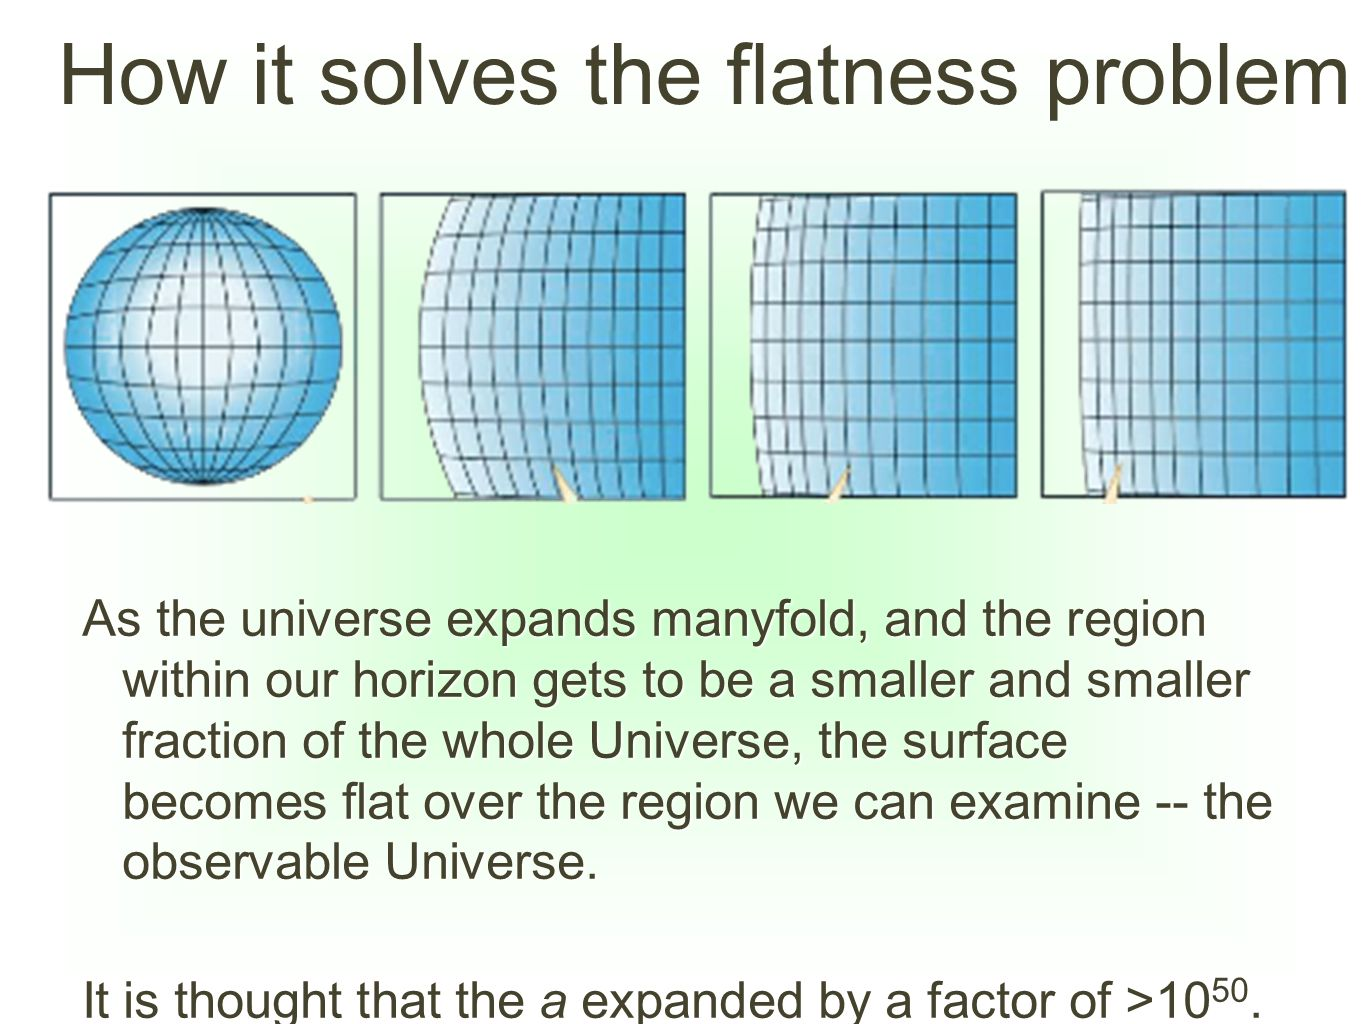 How it solves the flatness problem